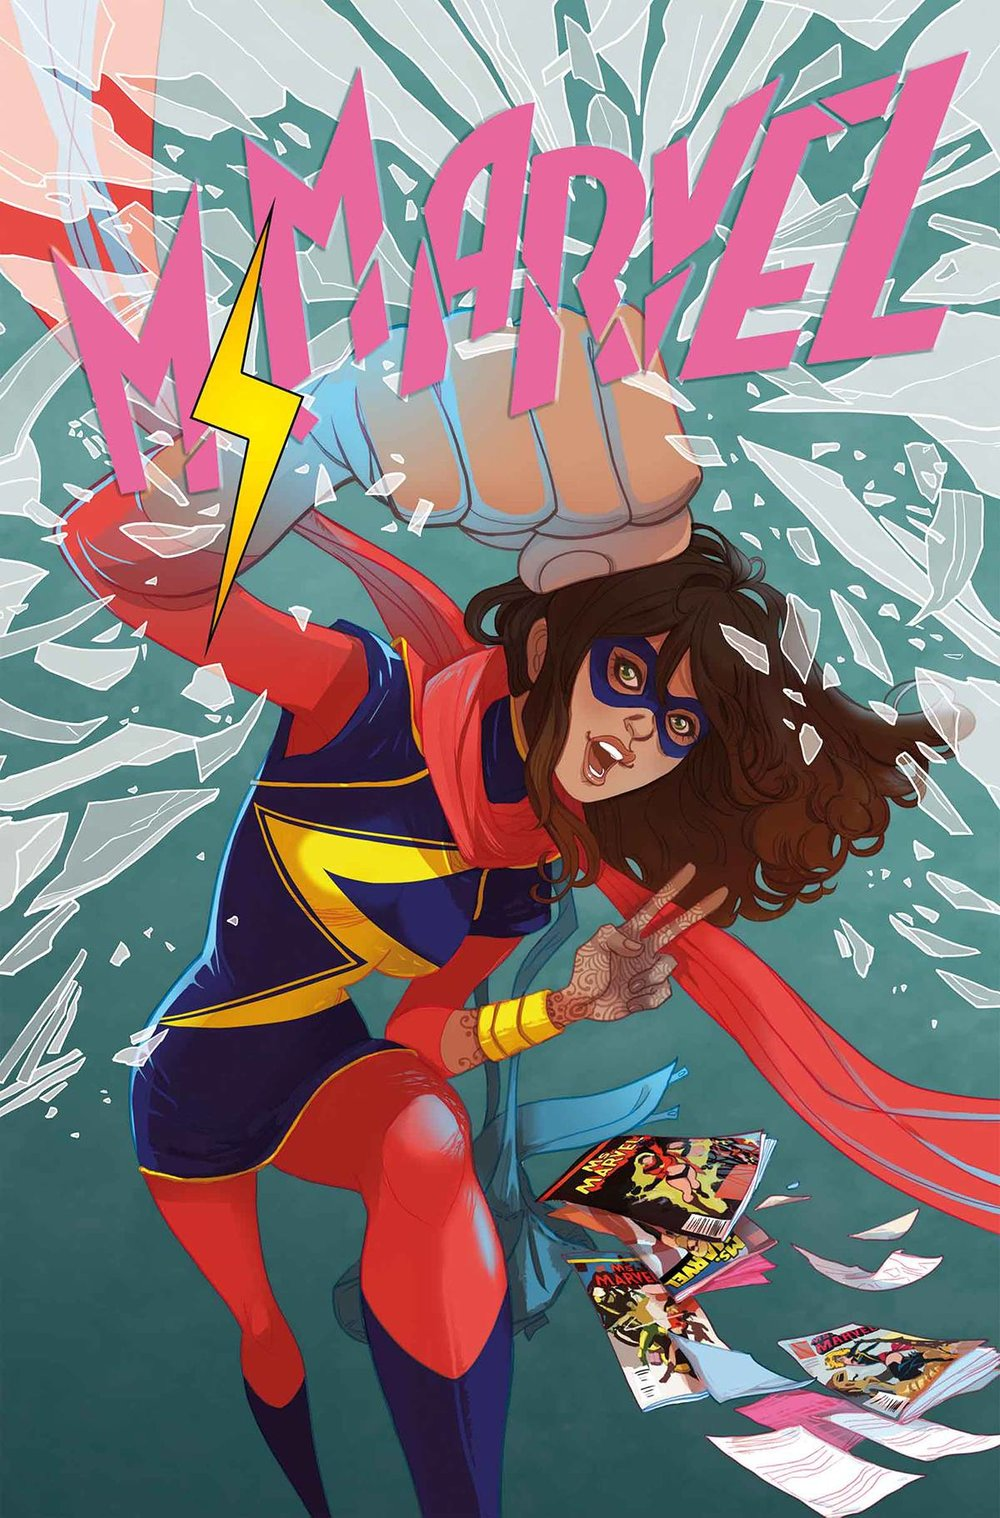 Fan favorite, Ms. Marvel